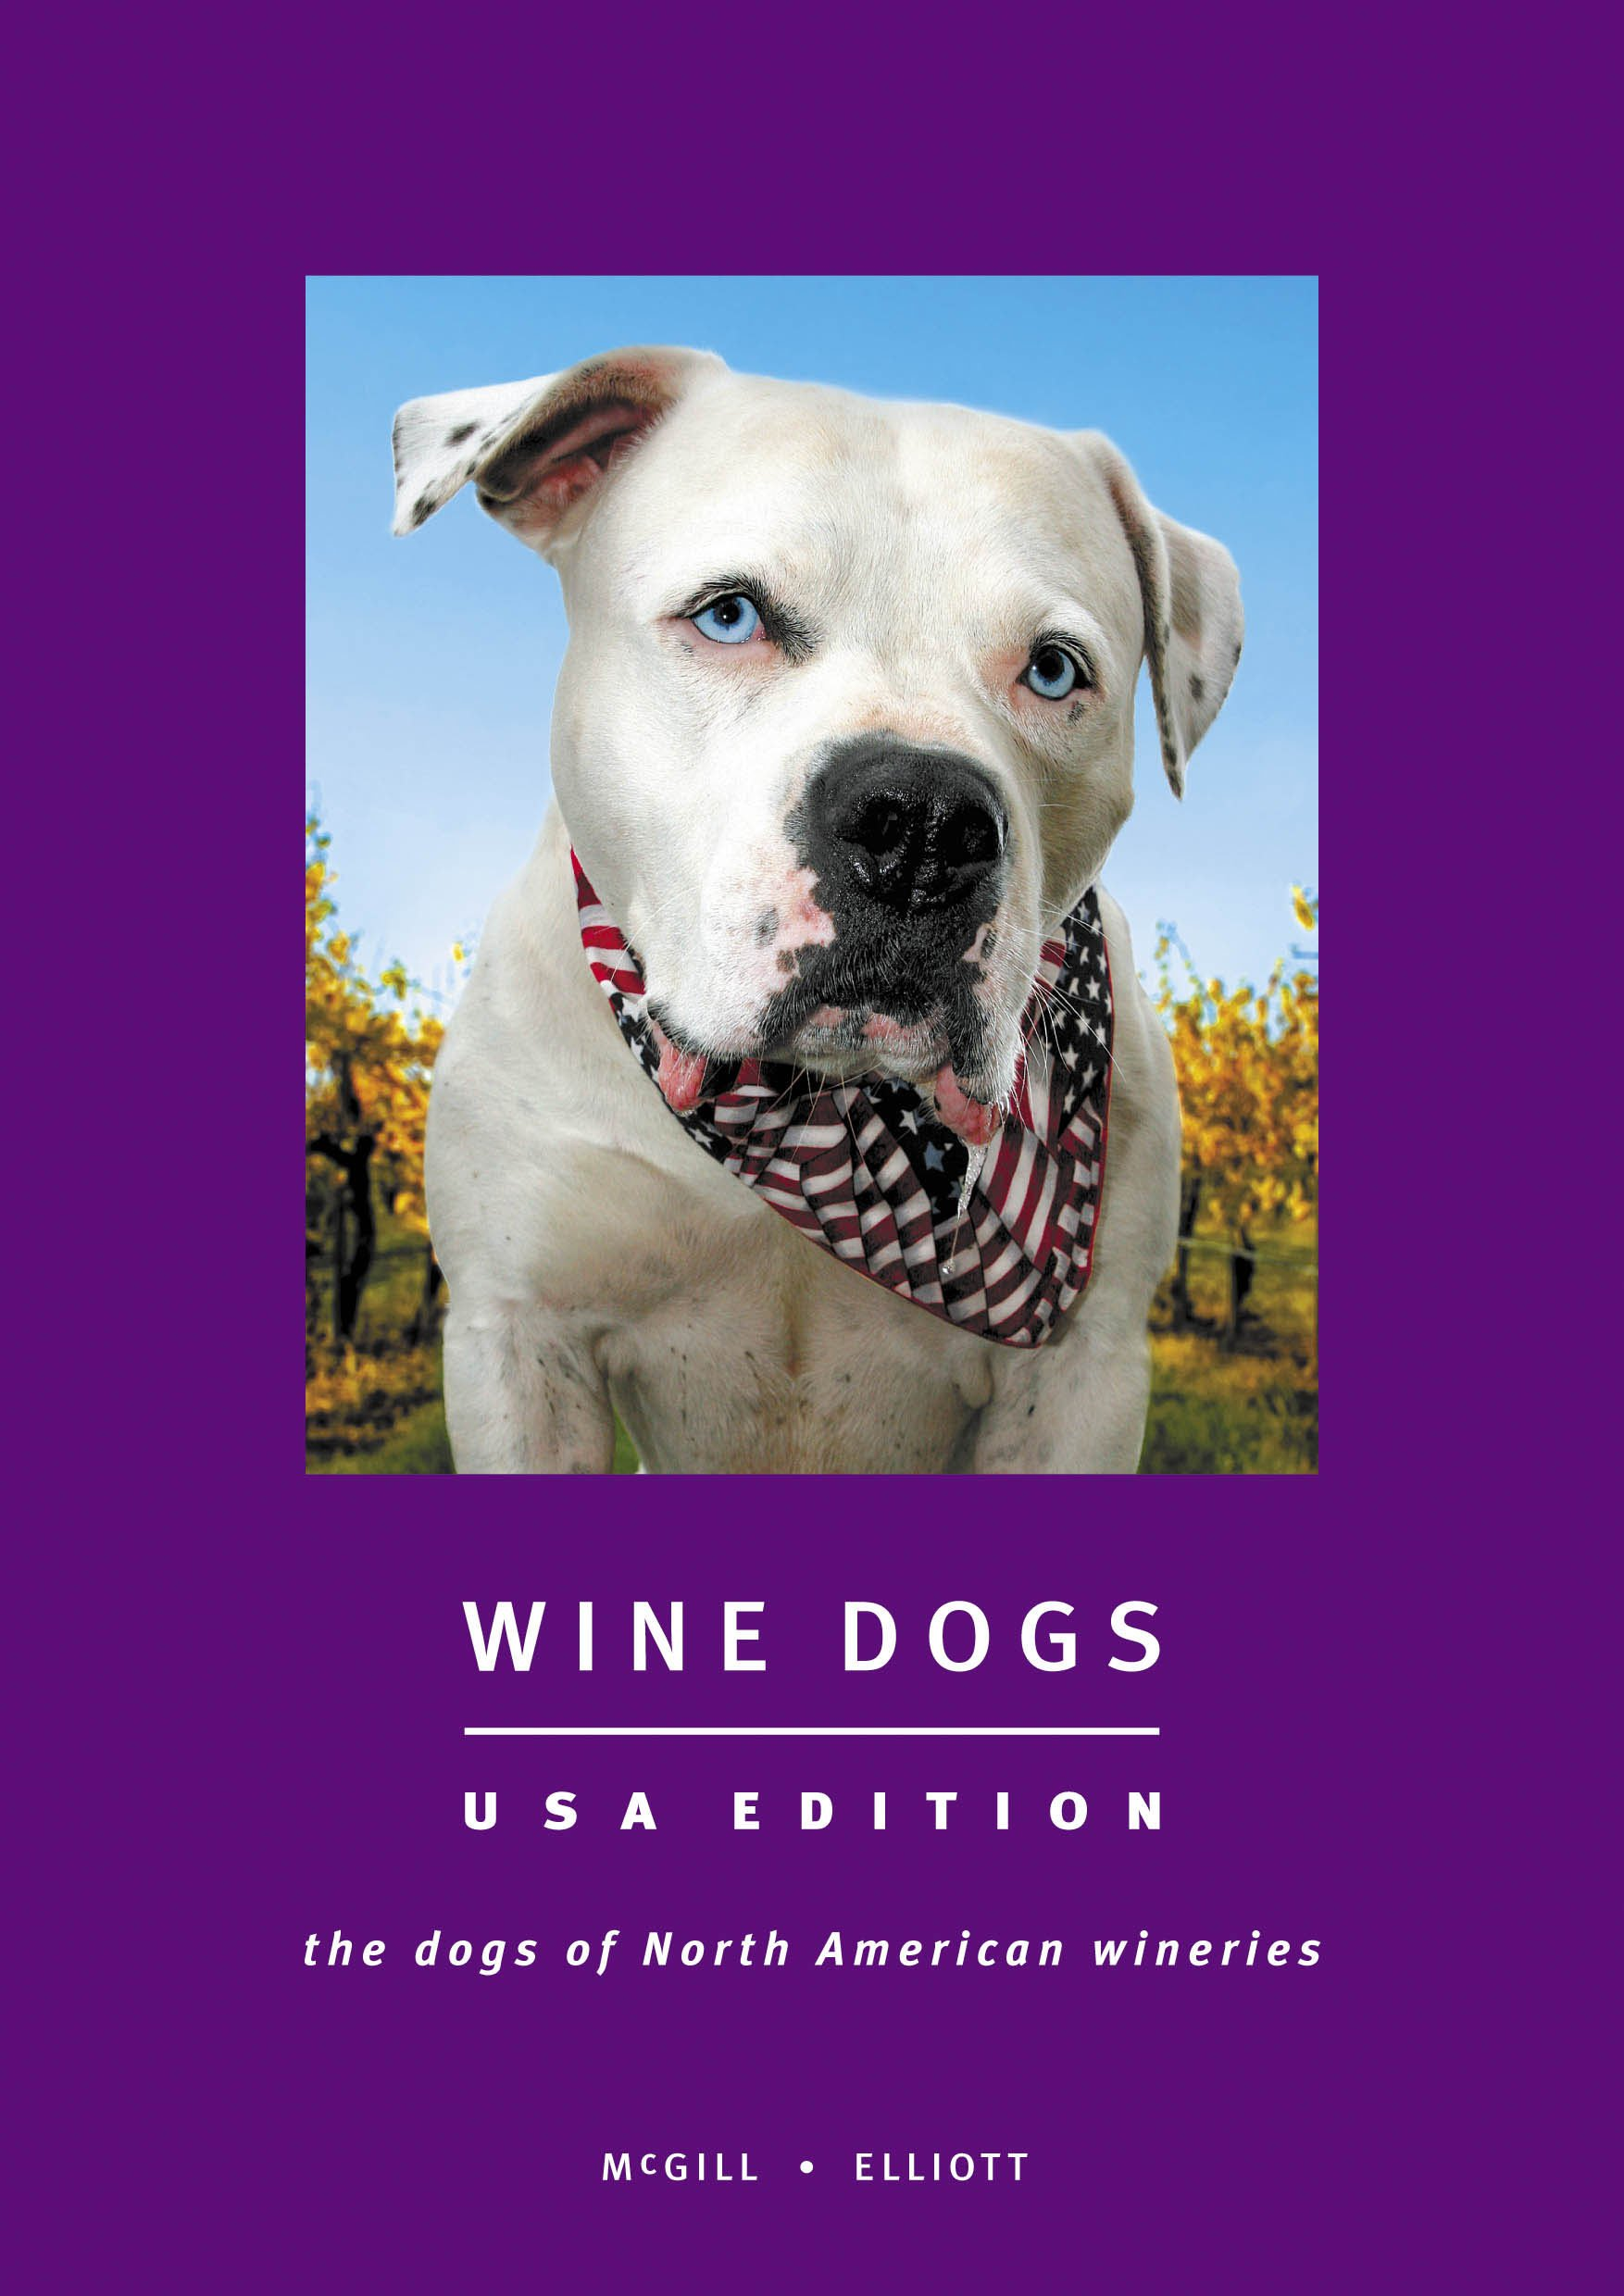 Wine dogs usa edition craig mcgill susan elliott 9780958085663 wine dogs usa edition craig mcgill susan elliott 9780958085663 amazon books fandeluxe Image collections